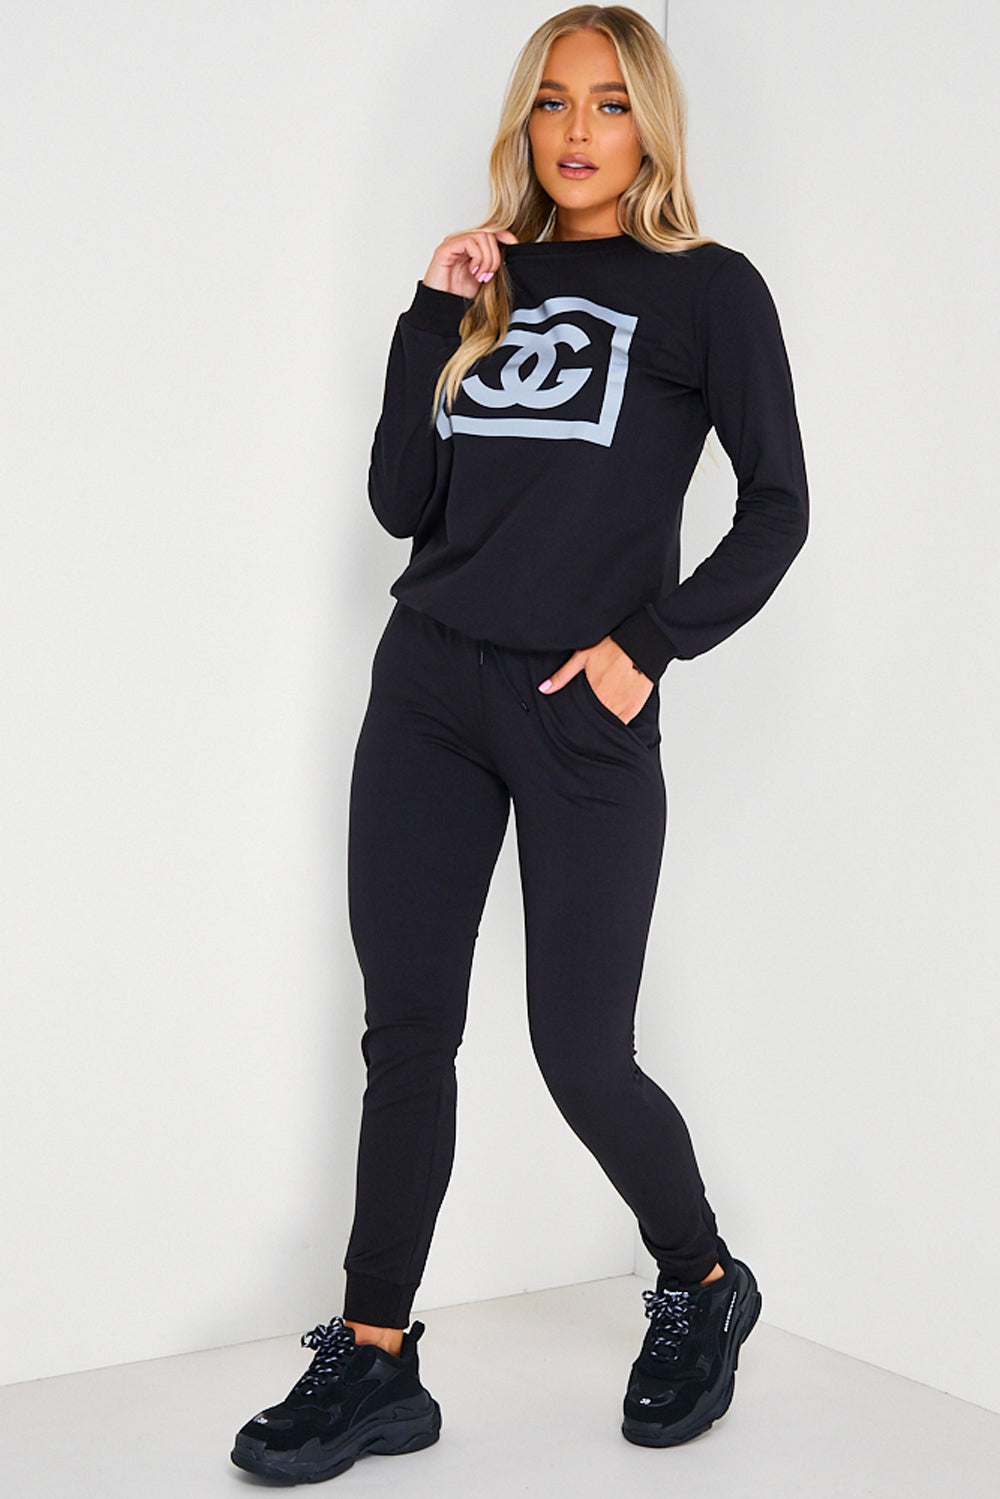 Black CG Printed Jumper and Joggers Tracksuit Set